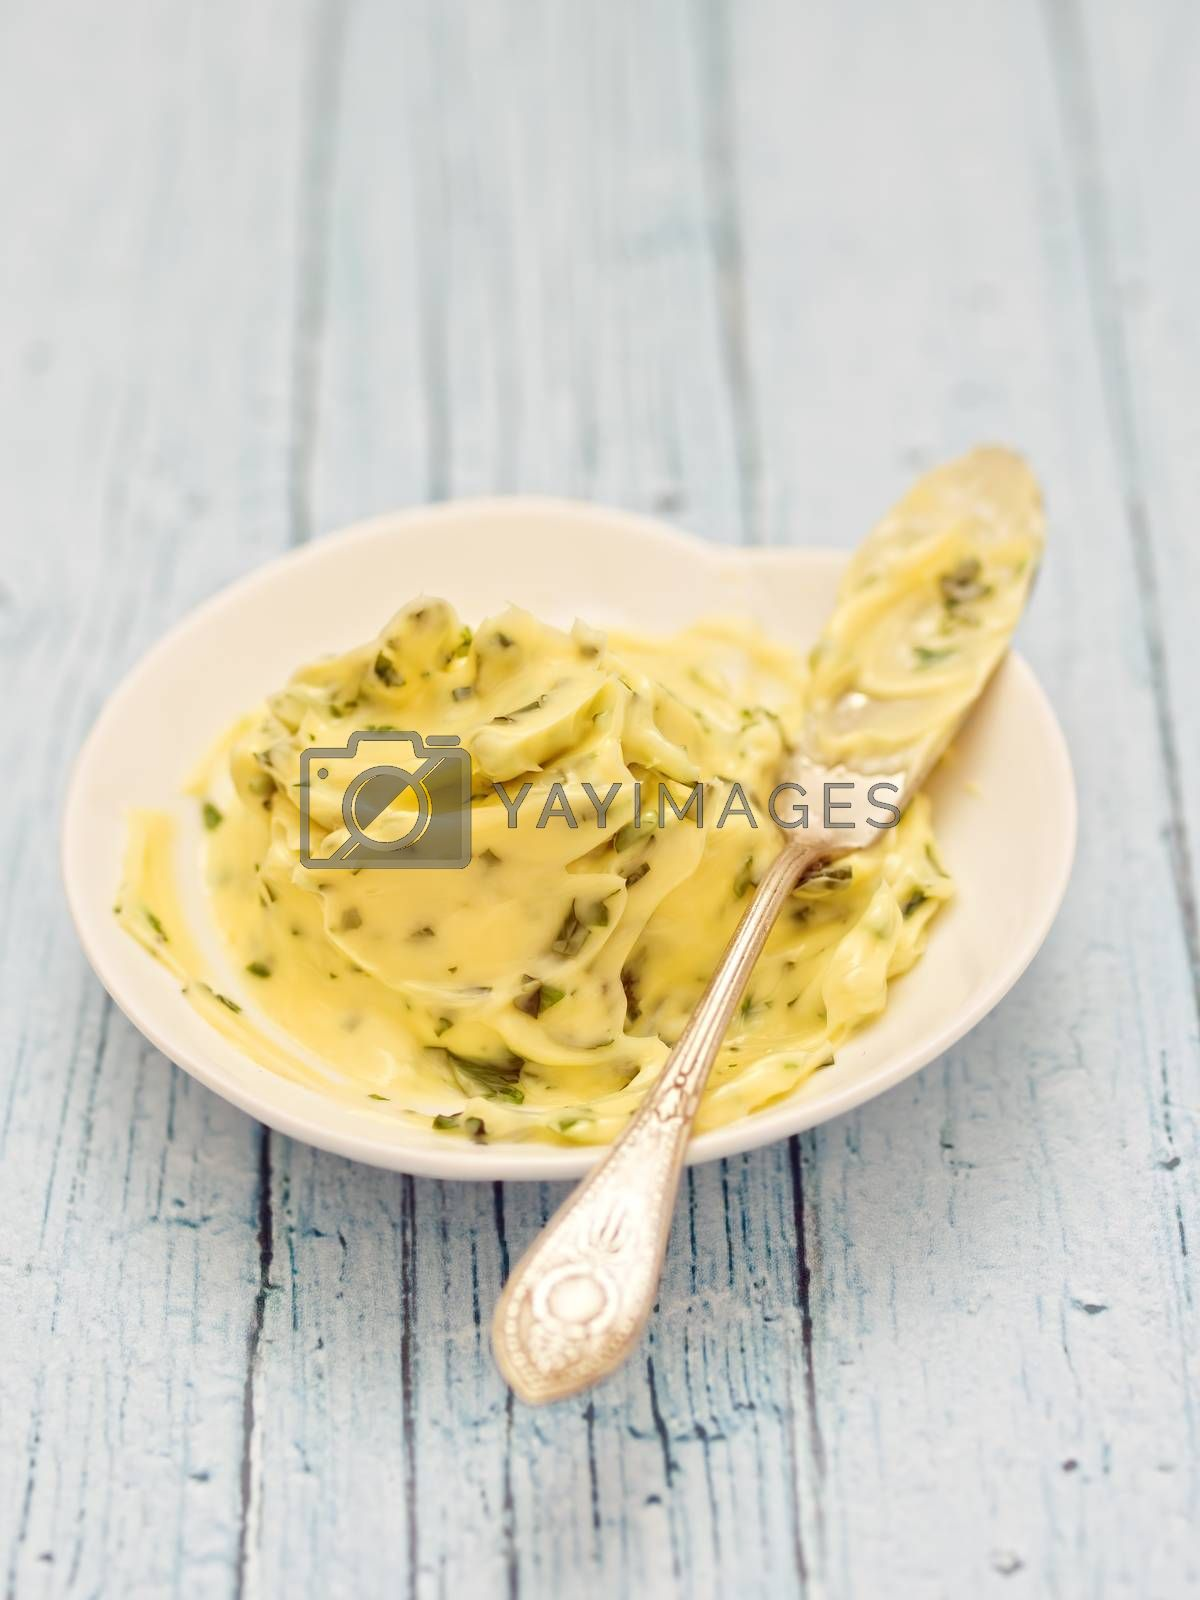 Royalty free image of rustic compound herb butter by zkruger